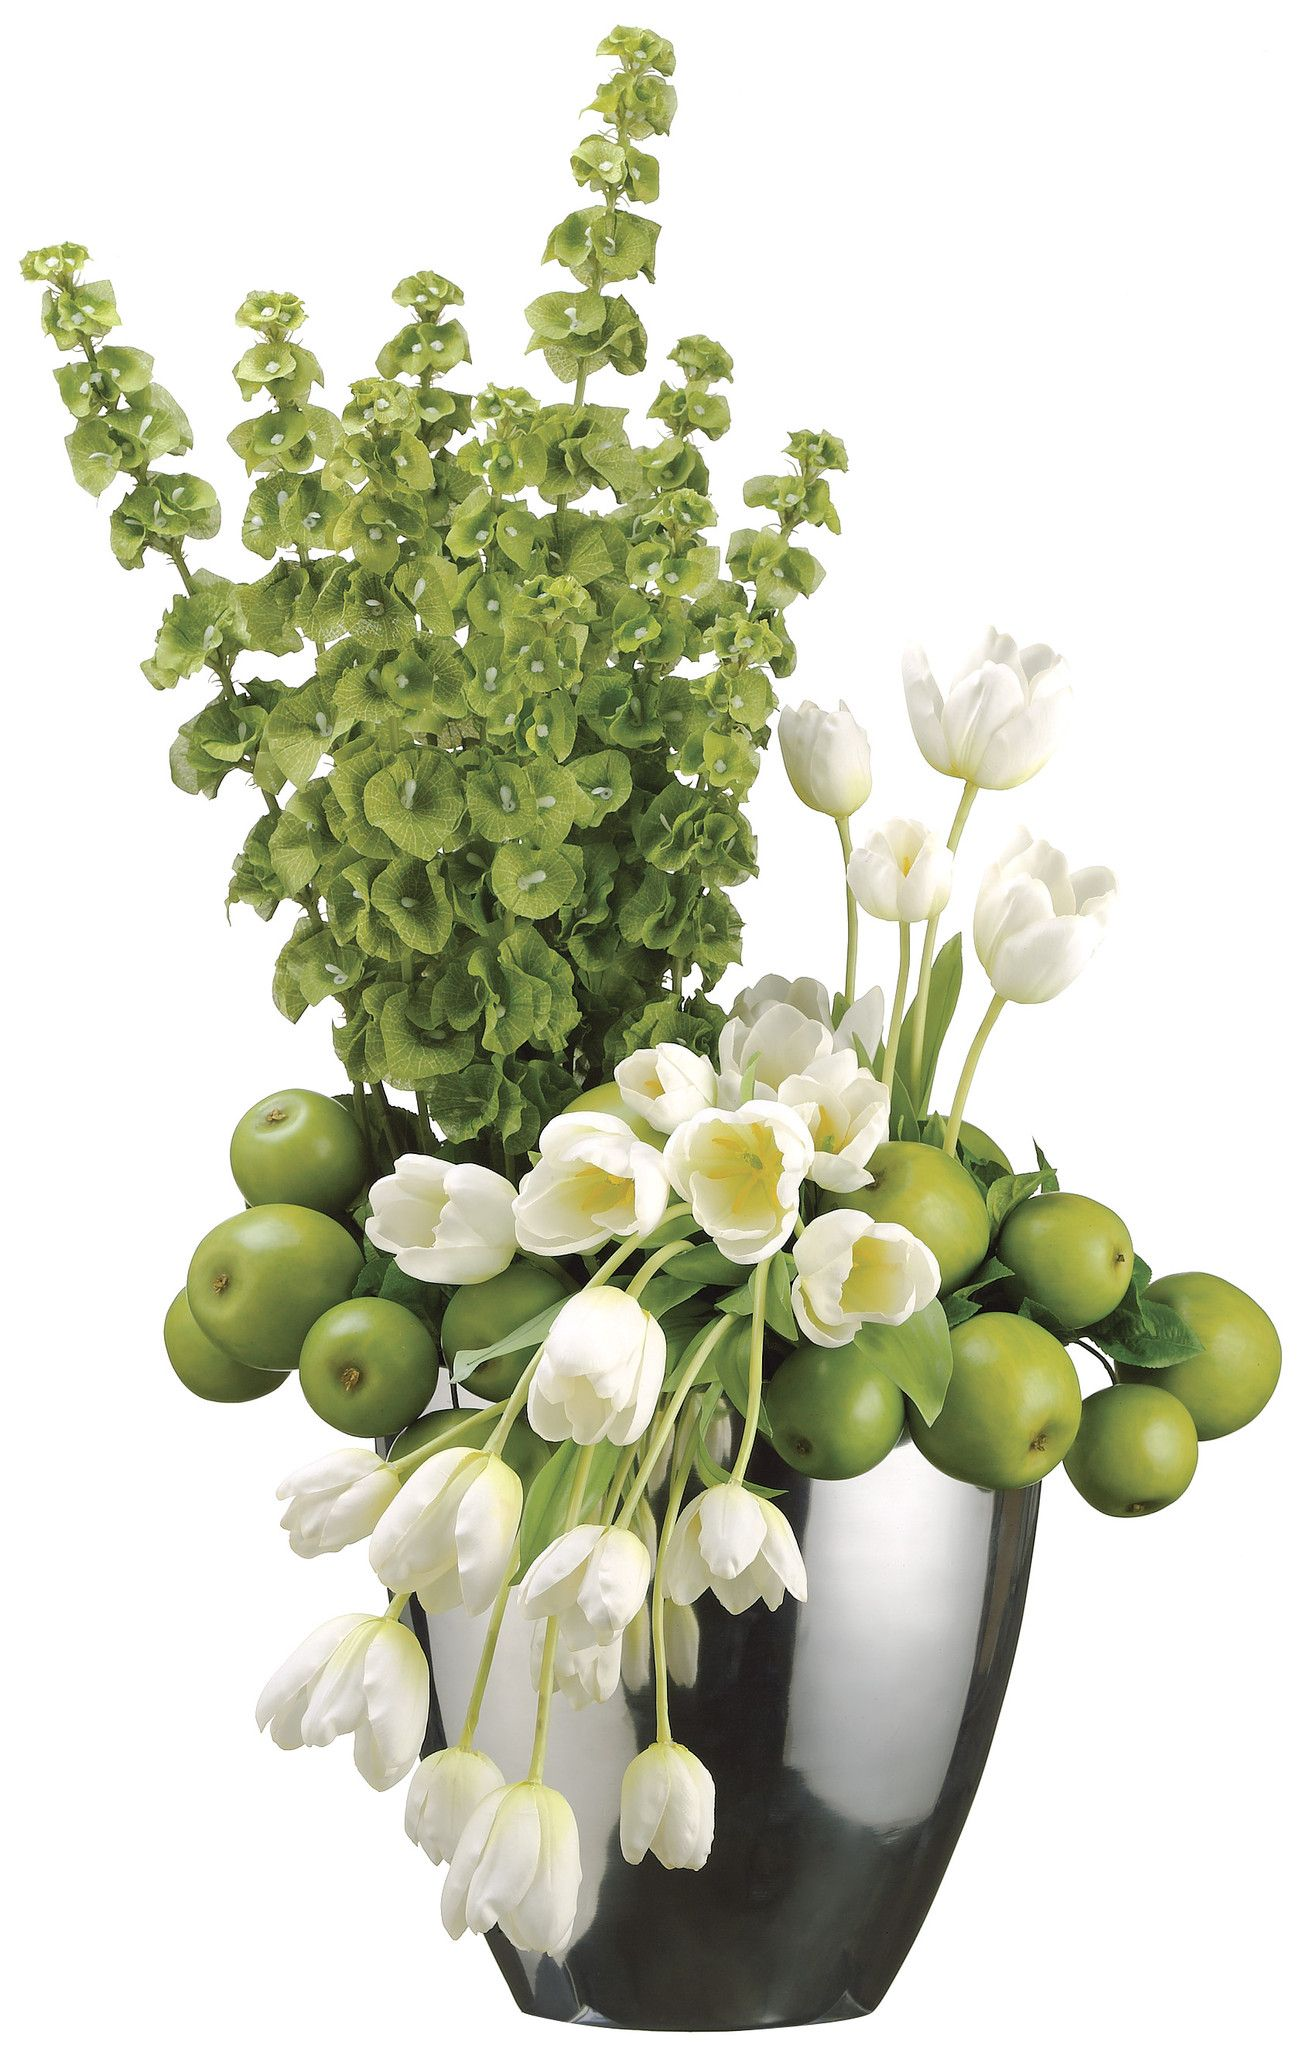 Tulip, Apple and Bells of Ireland Arrangement in Oval Vase, White and Green, Home Office Decor